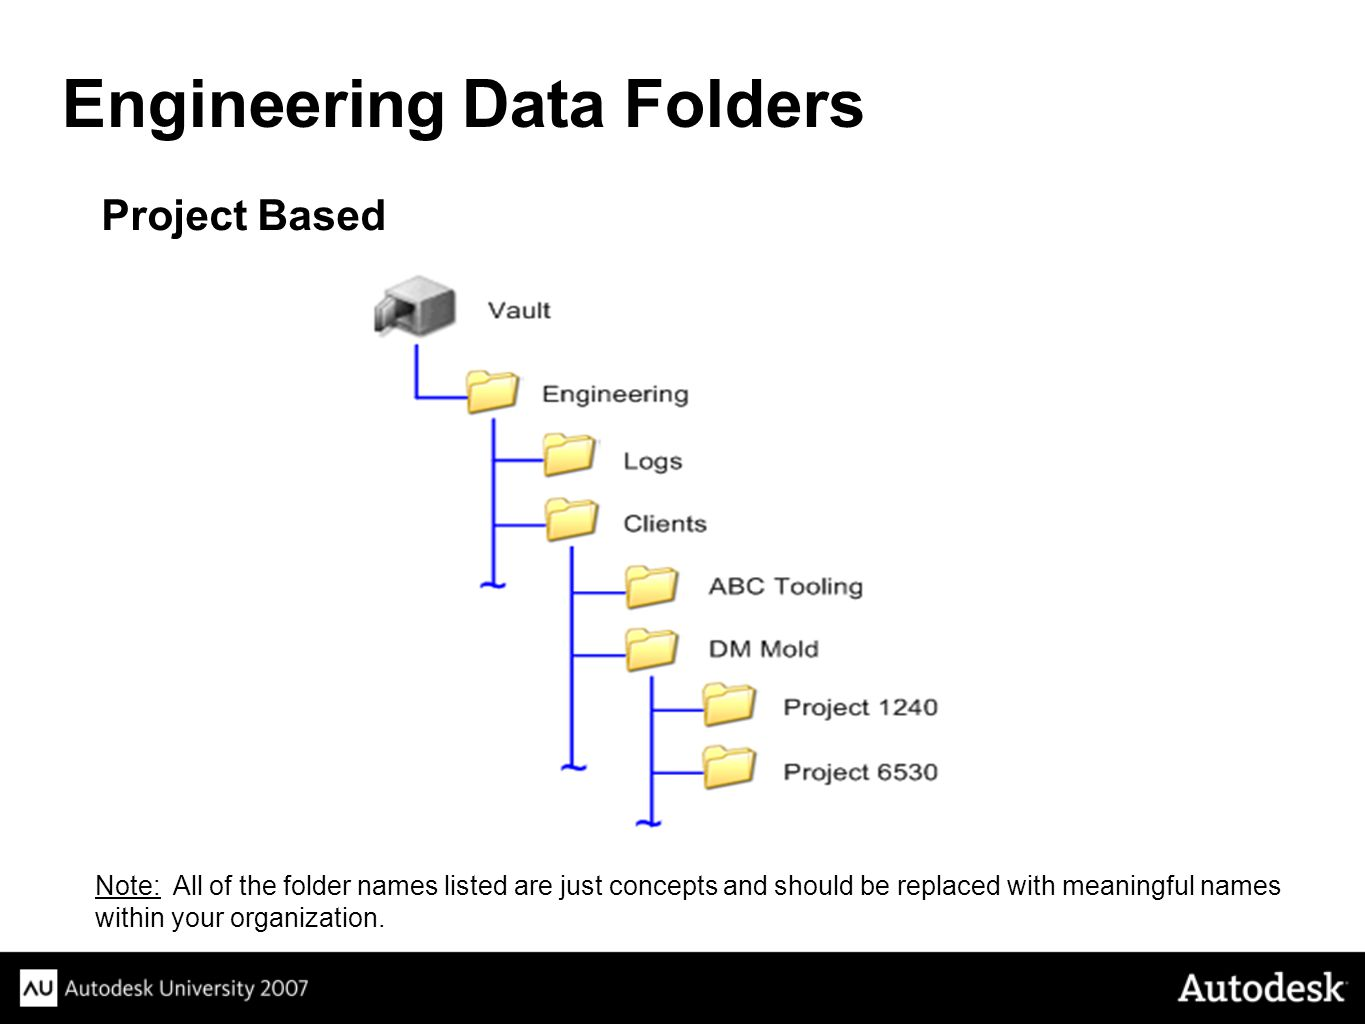 Project Based Engineering Data Folders Note: All of the folder names listed are just concepts and should be replaced with meaningful names within your organization.